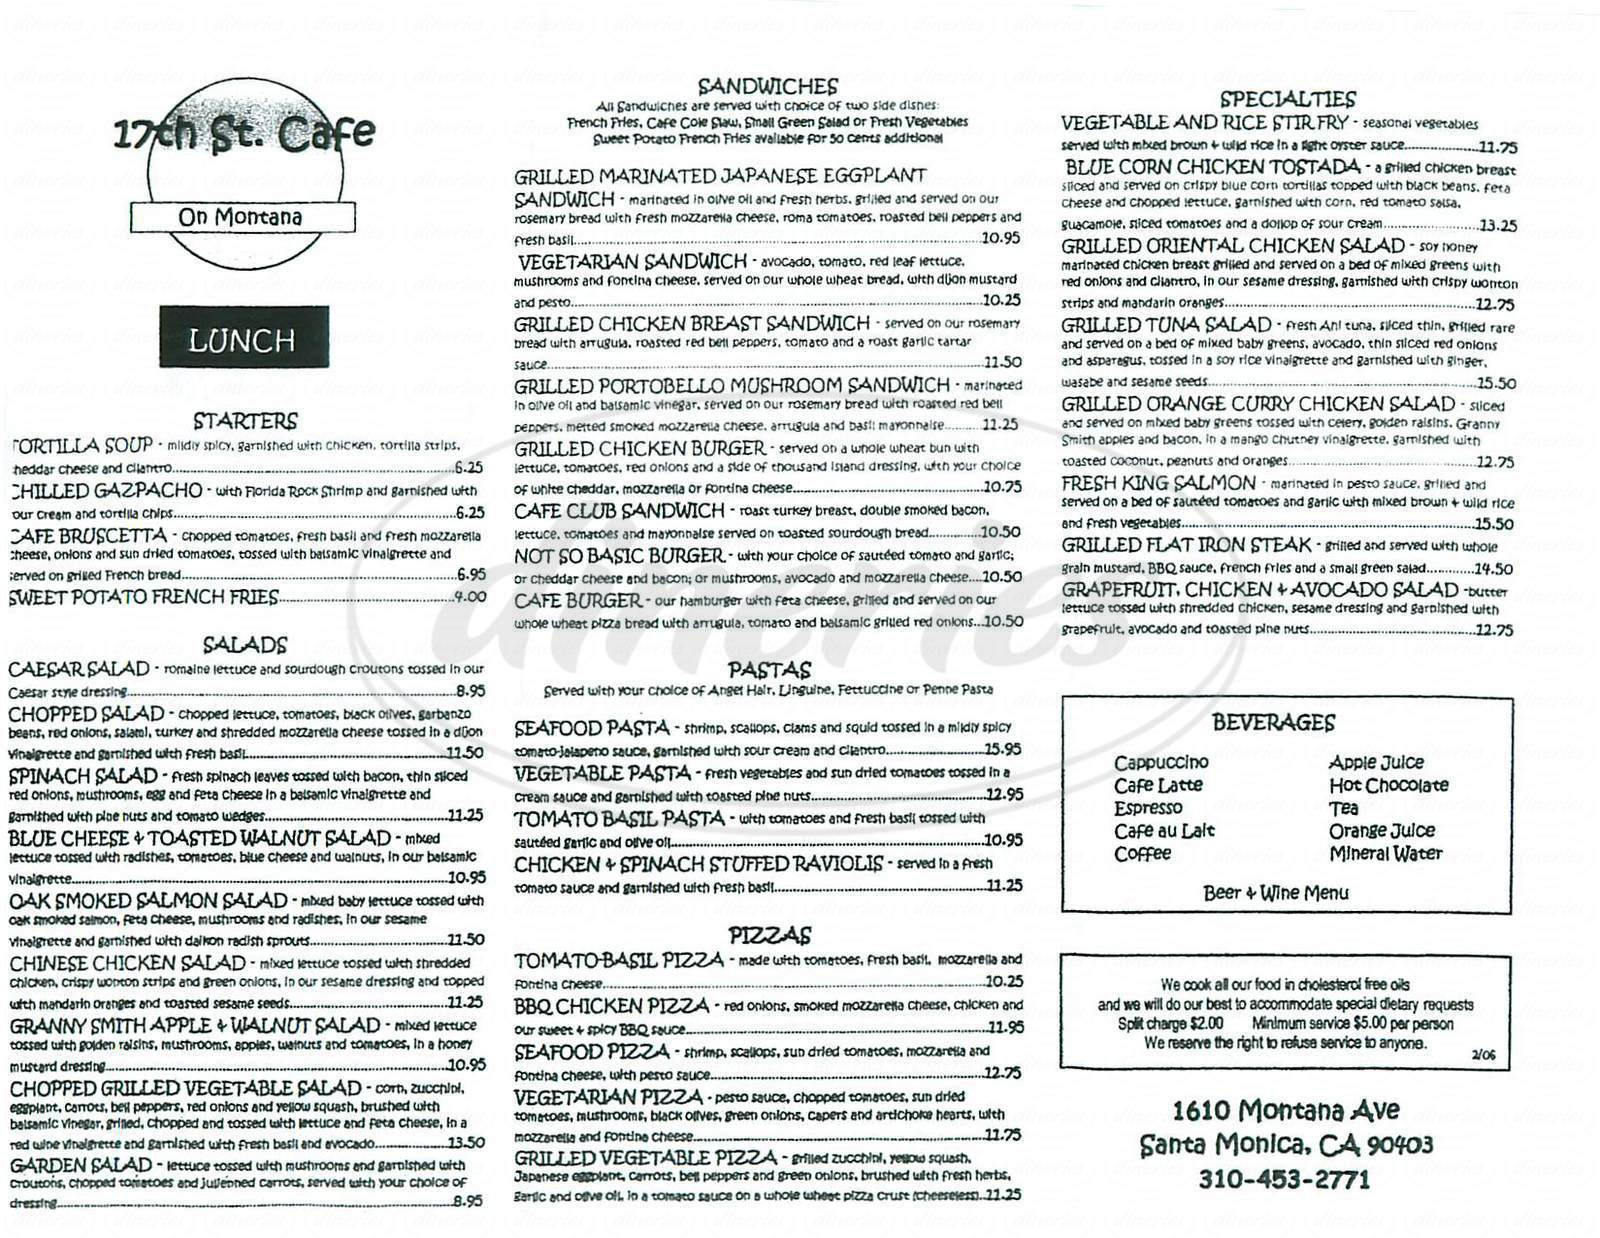 menu for 17th St. Café